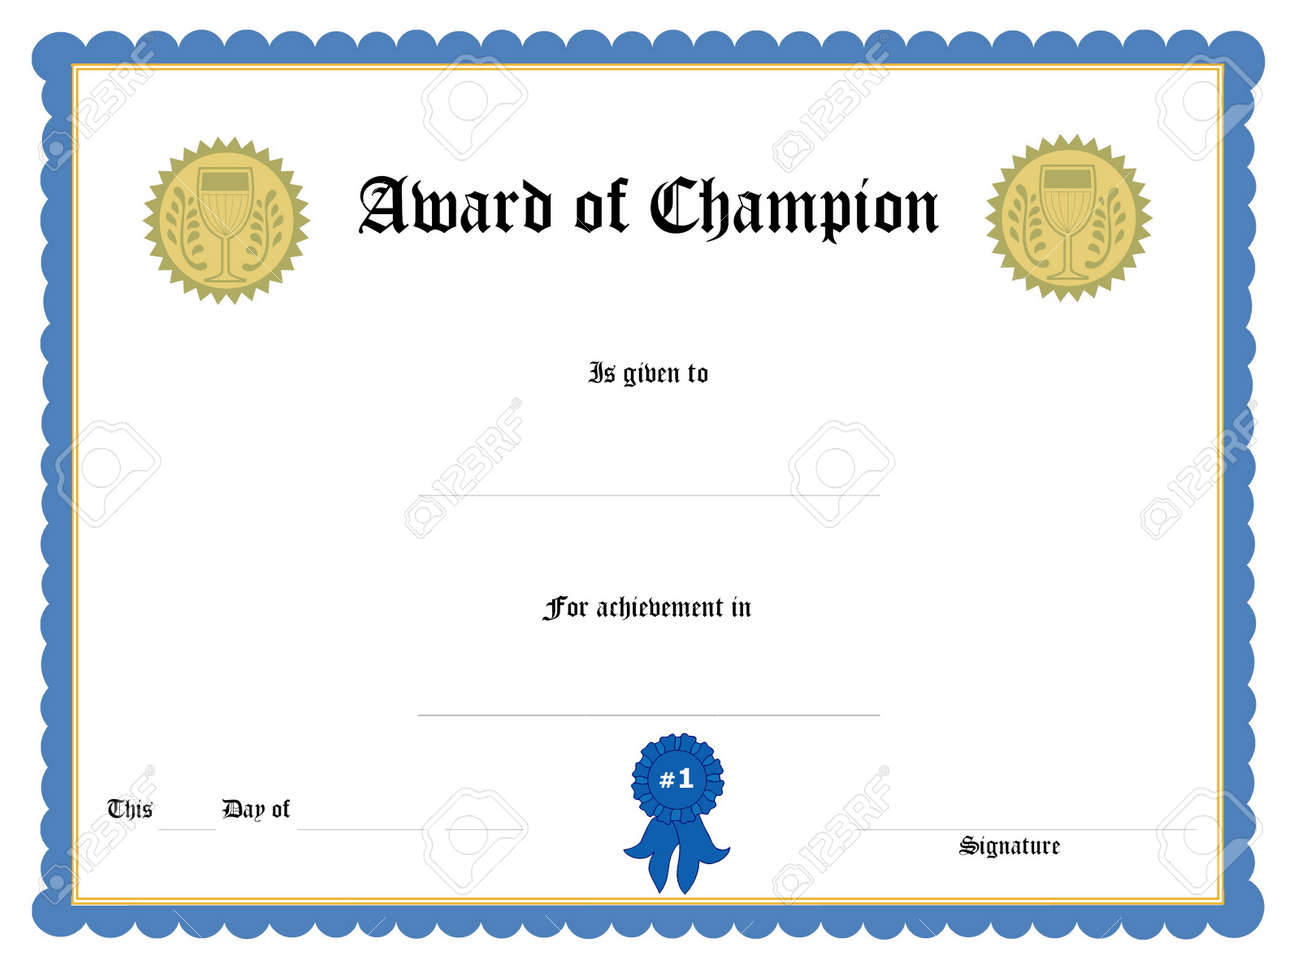 Blank certificate format template for vouchers proposal template certificate sports award certificate template design templates 1565497 blank award certificate form stock photo sports certificate yadclub Choice Image